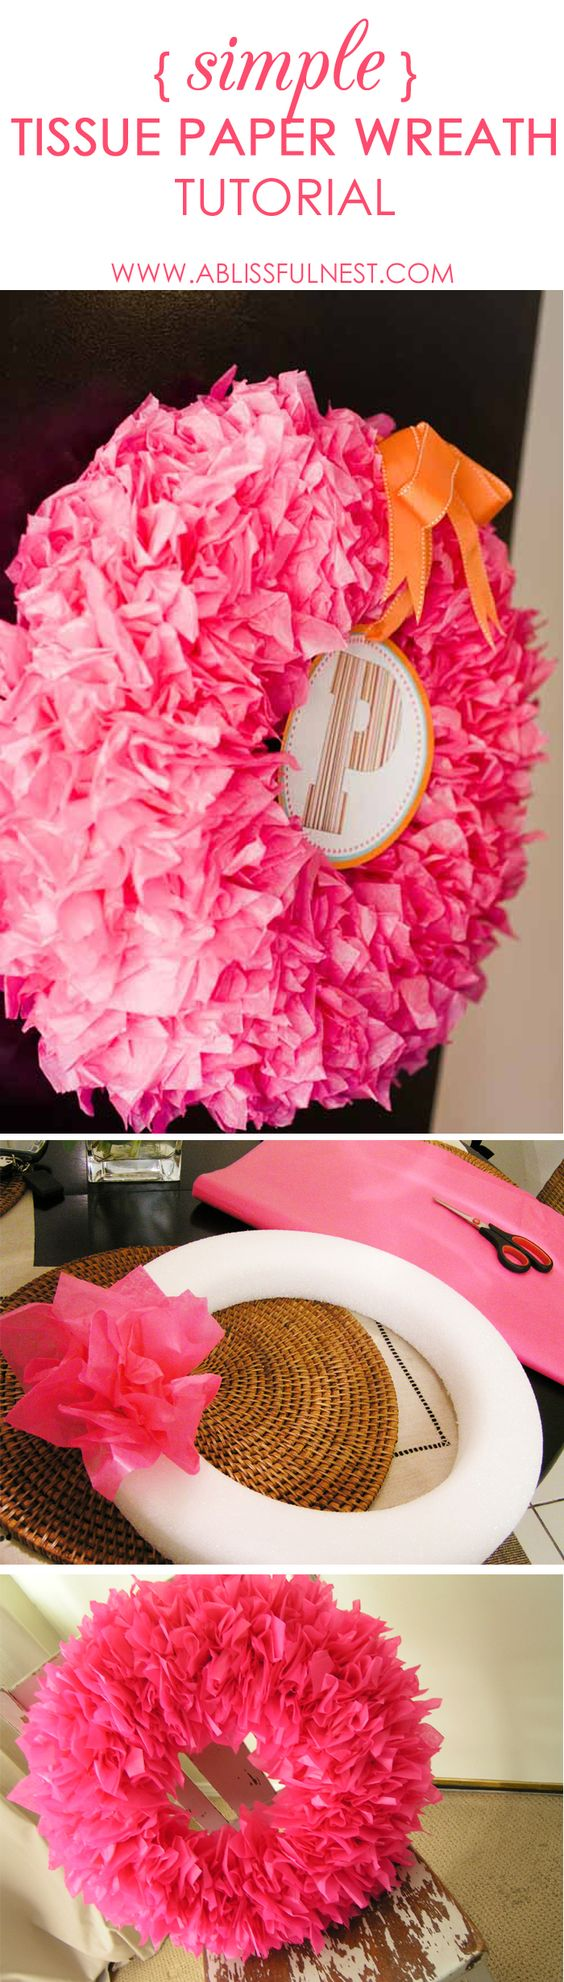 Simple and easy tissue paper wreath tutorial. How to make a gorgeous tissue paper wreath in these few simple steps.